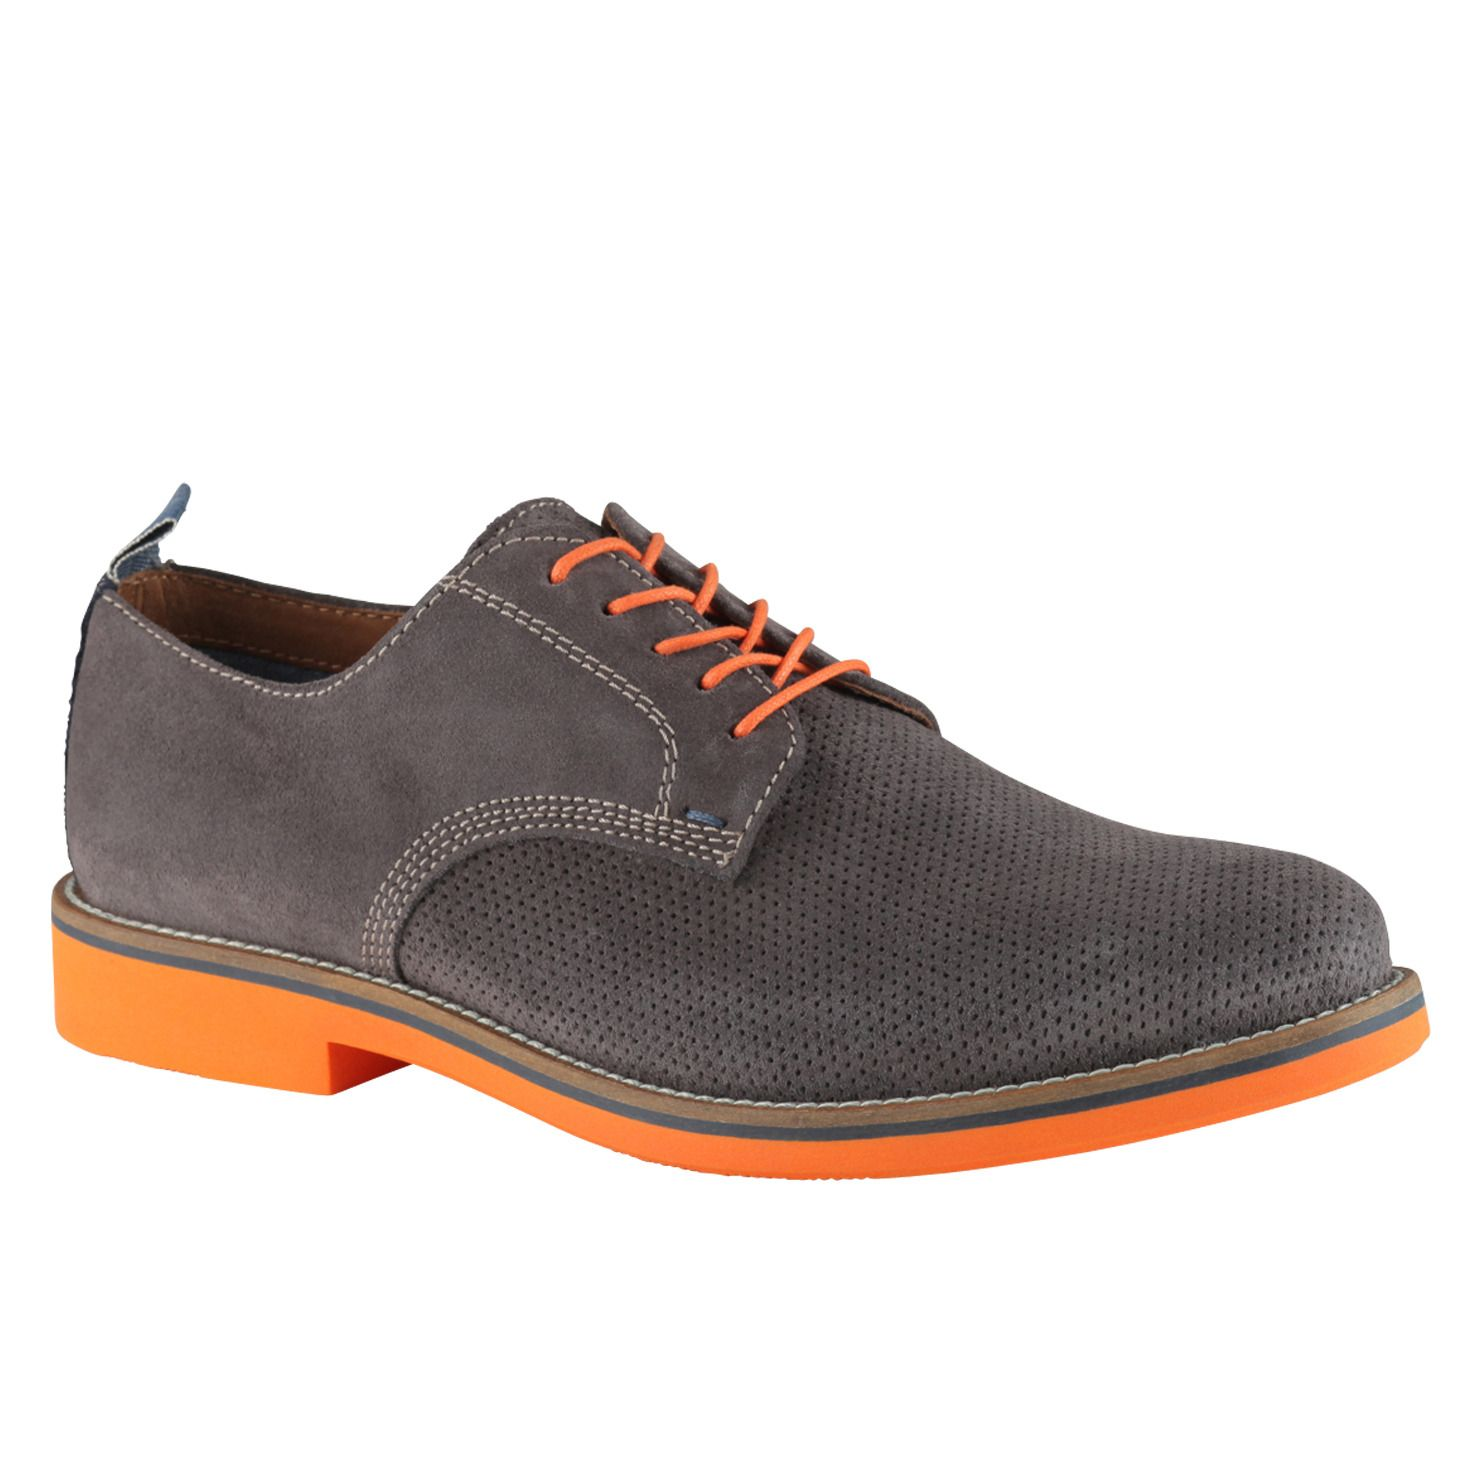 aldo shoes goodyear welted men s classic genuine merchandise